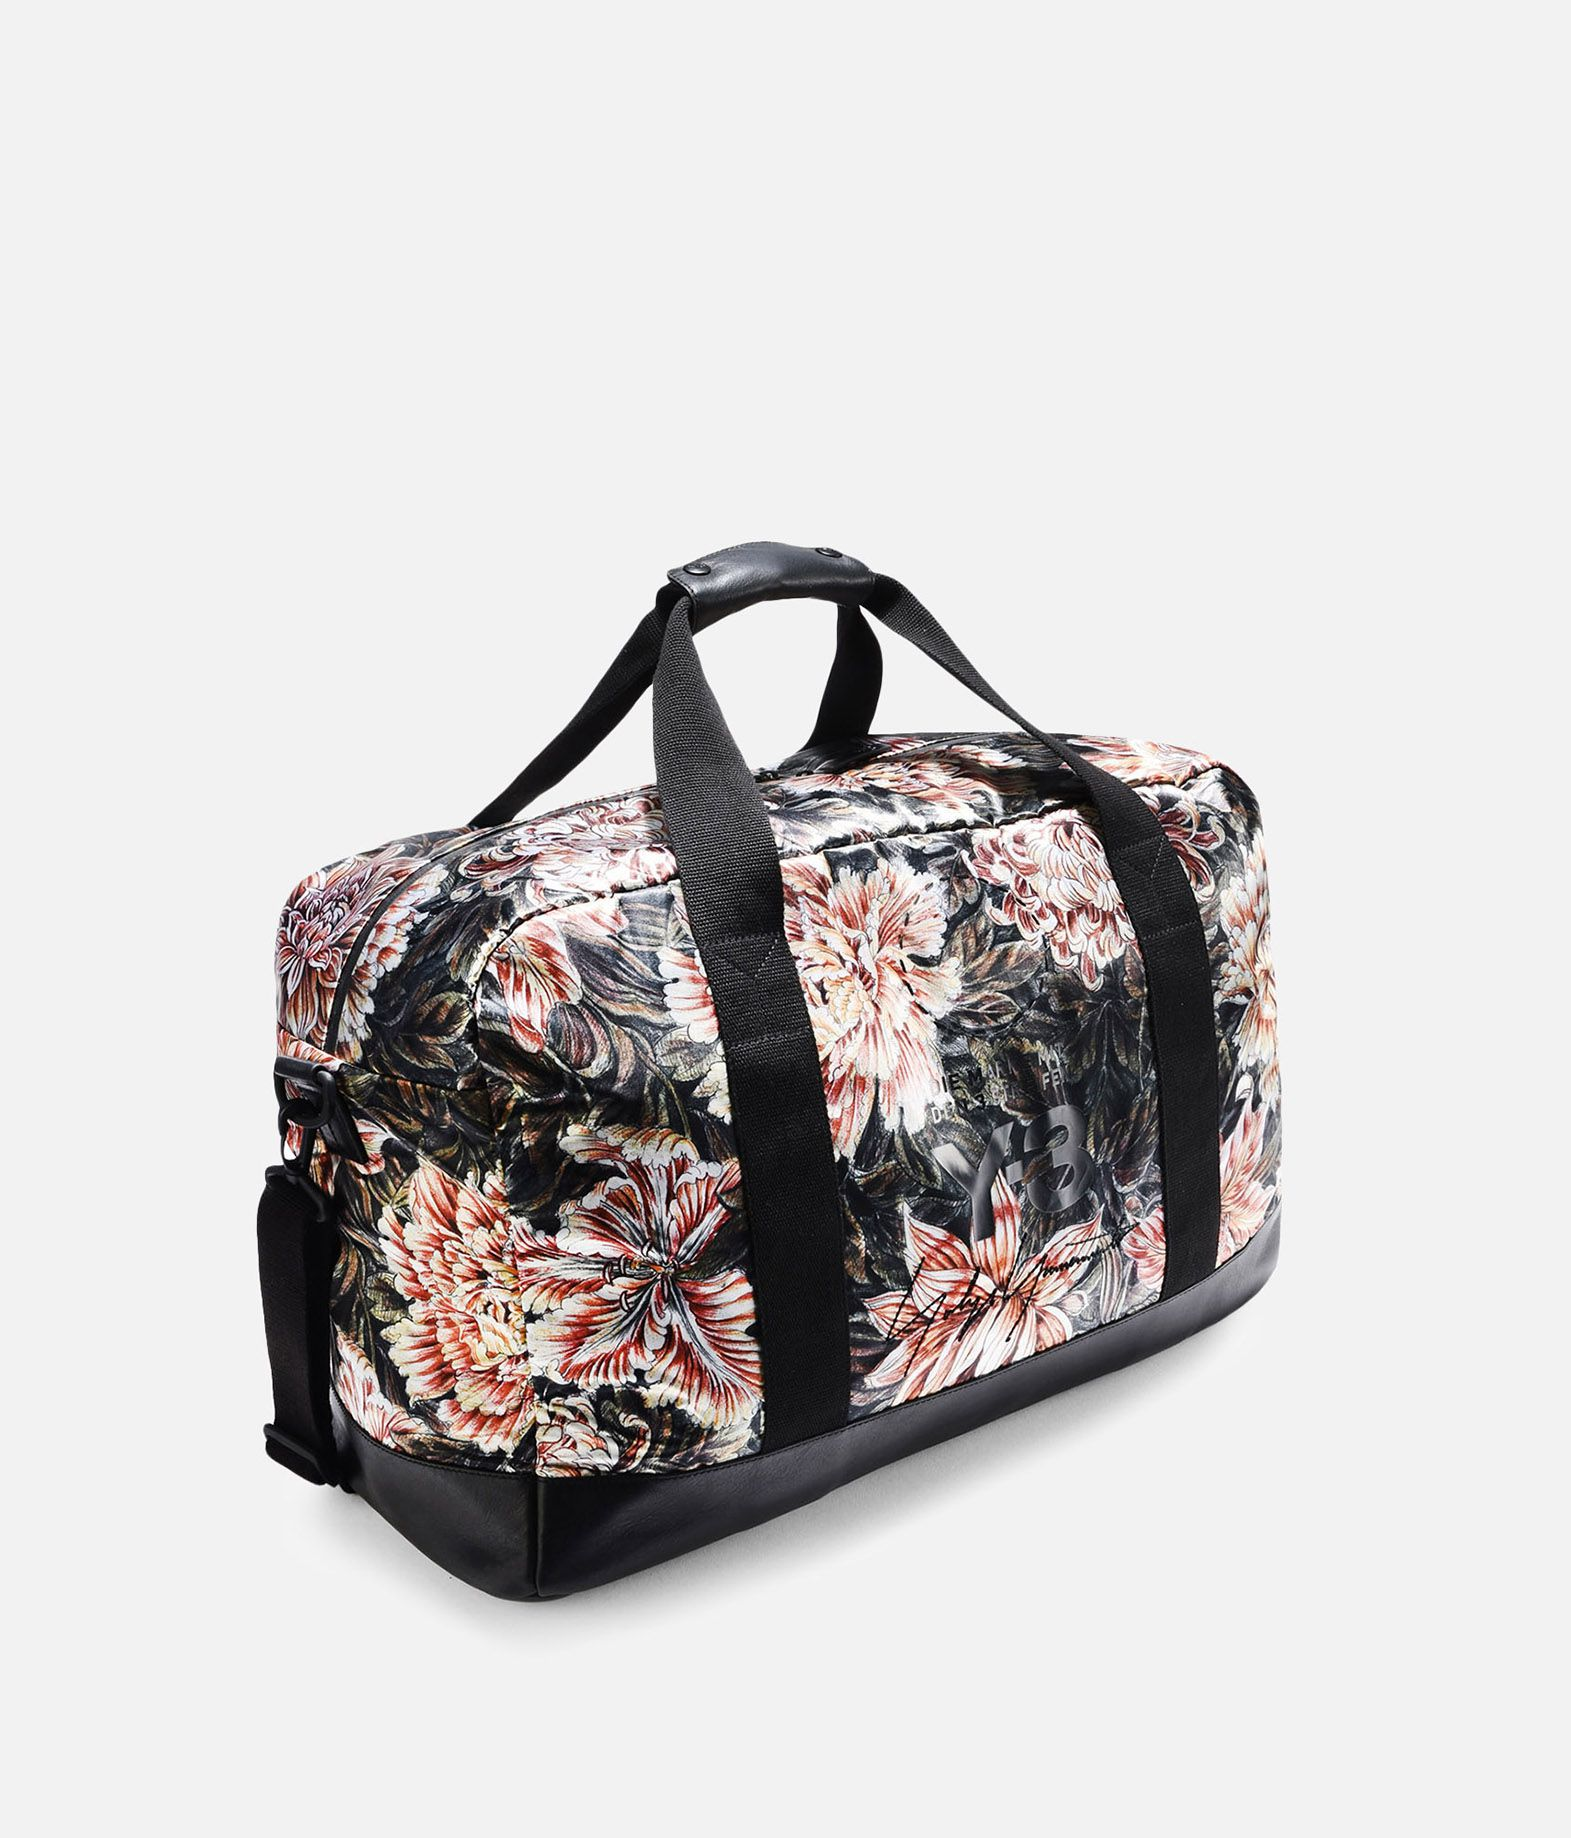 Y-3 Y-3 AOP Weekender Bag Travel bags E r